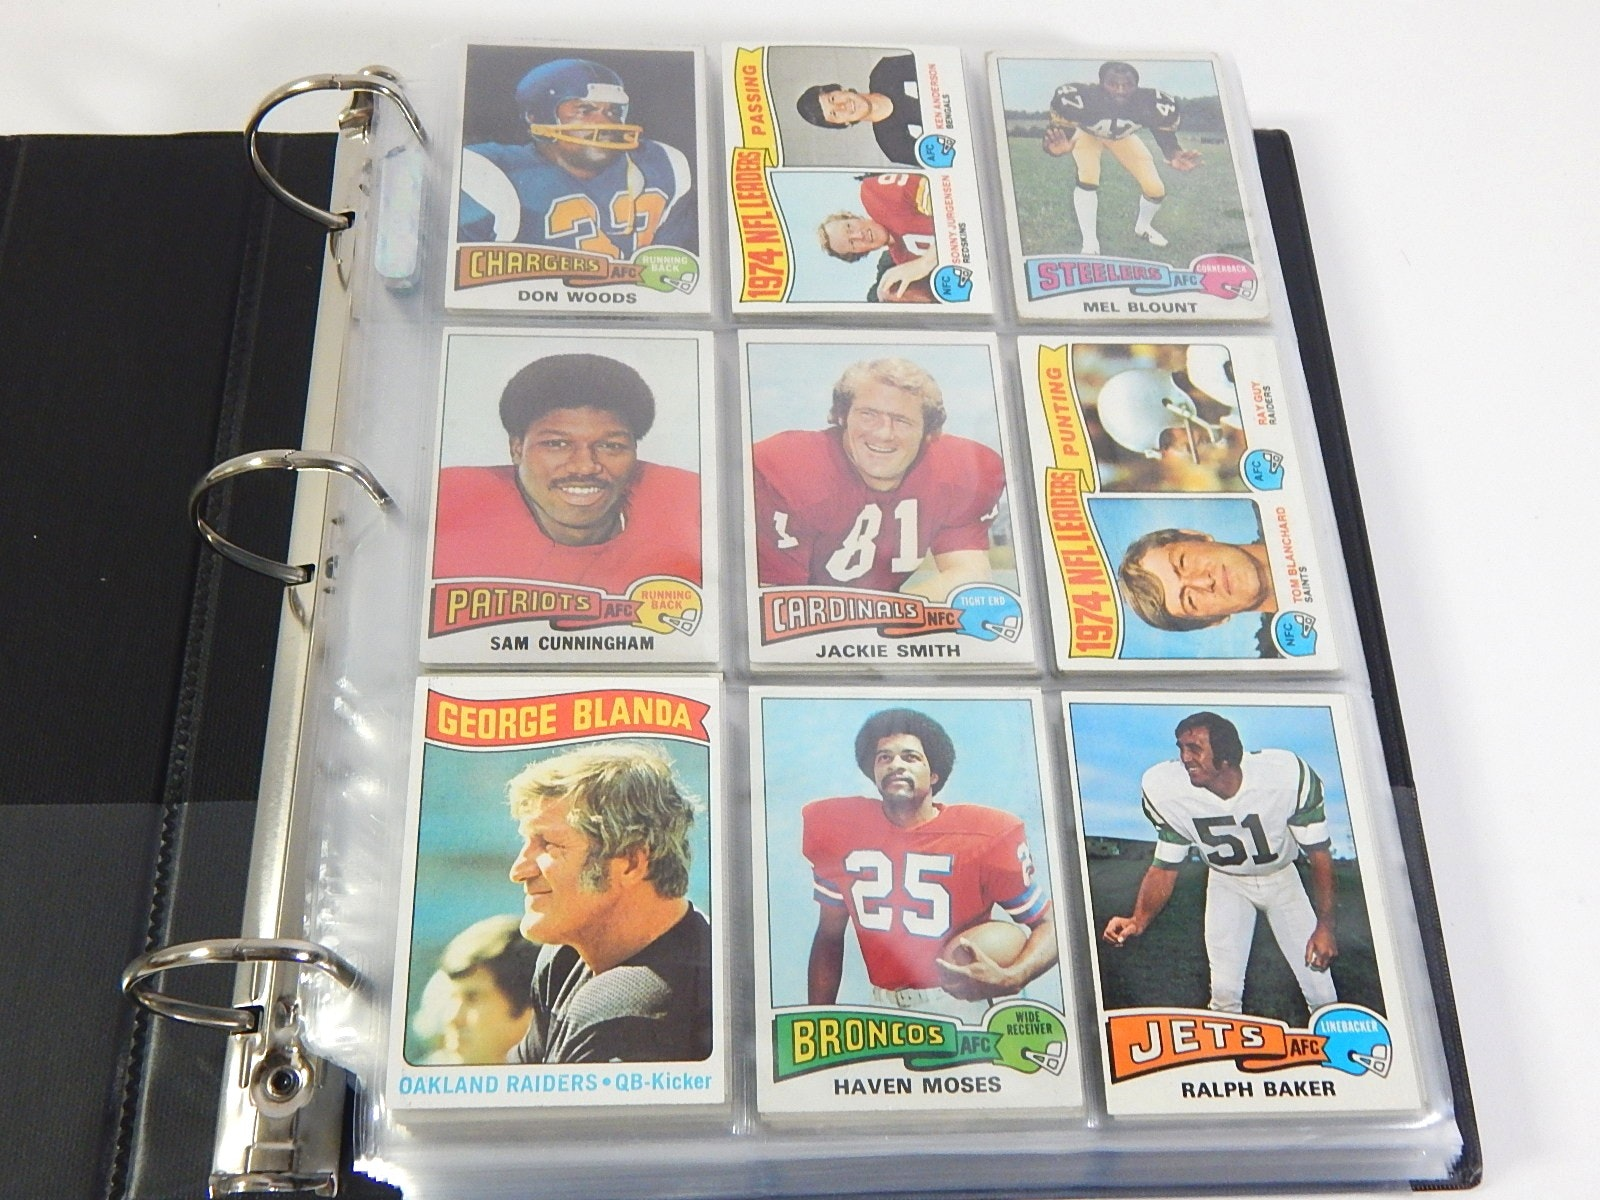 1975 Topps Football Partial Set in Album - Around 450 Card Count